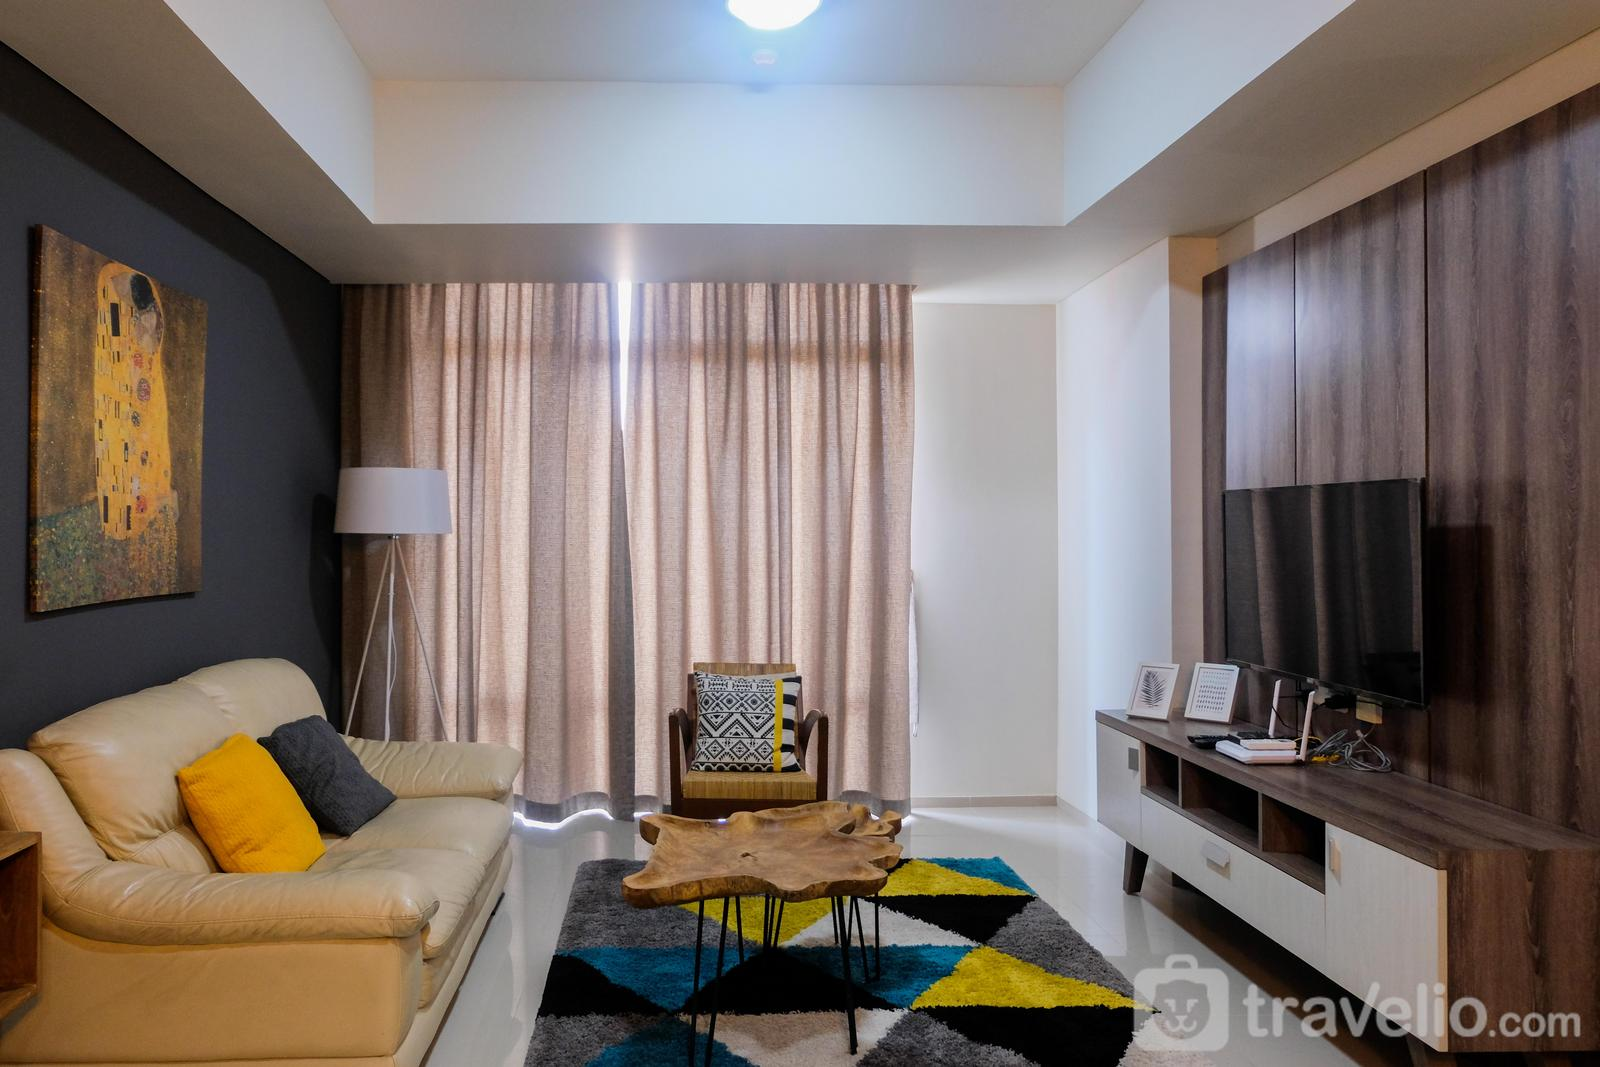 The Accent Apartment - Cozy and Elegant 2BR at The Accent Apartment By Travelio